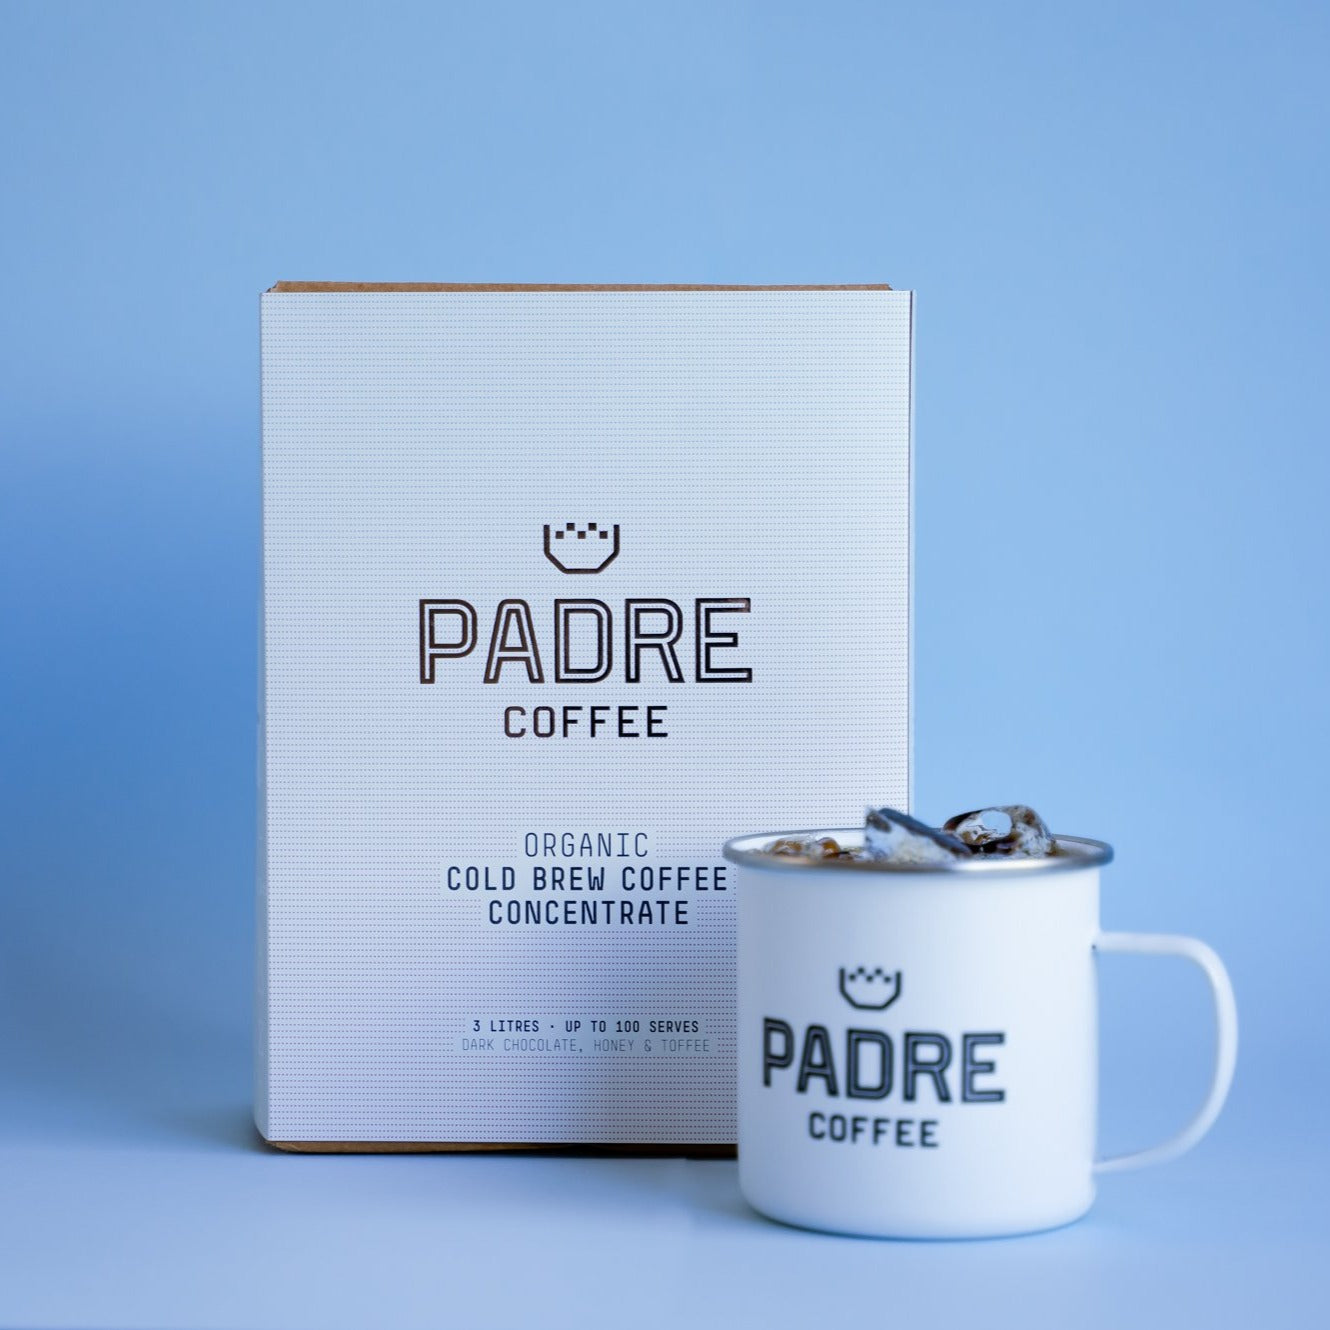 Padre Coffee Organic Cold Brew Coffee Concentrate